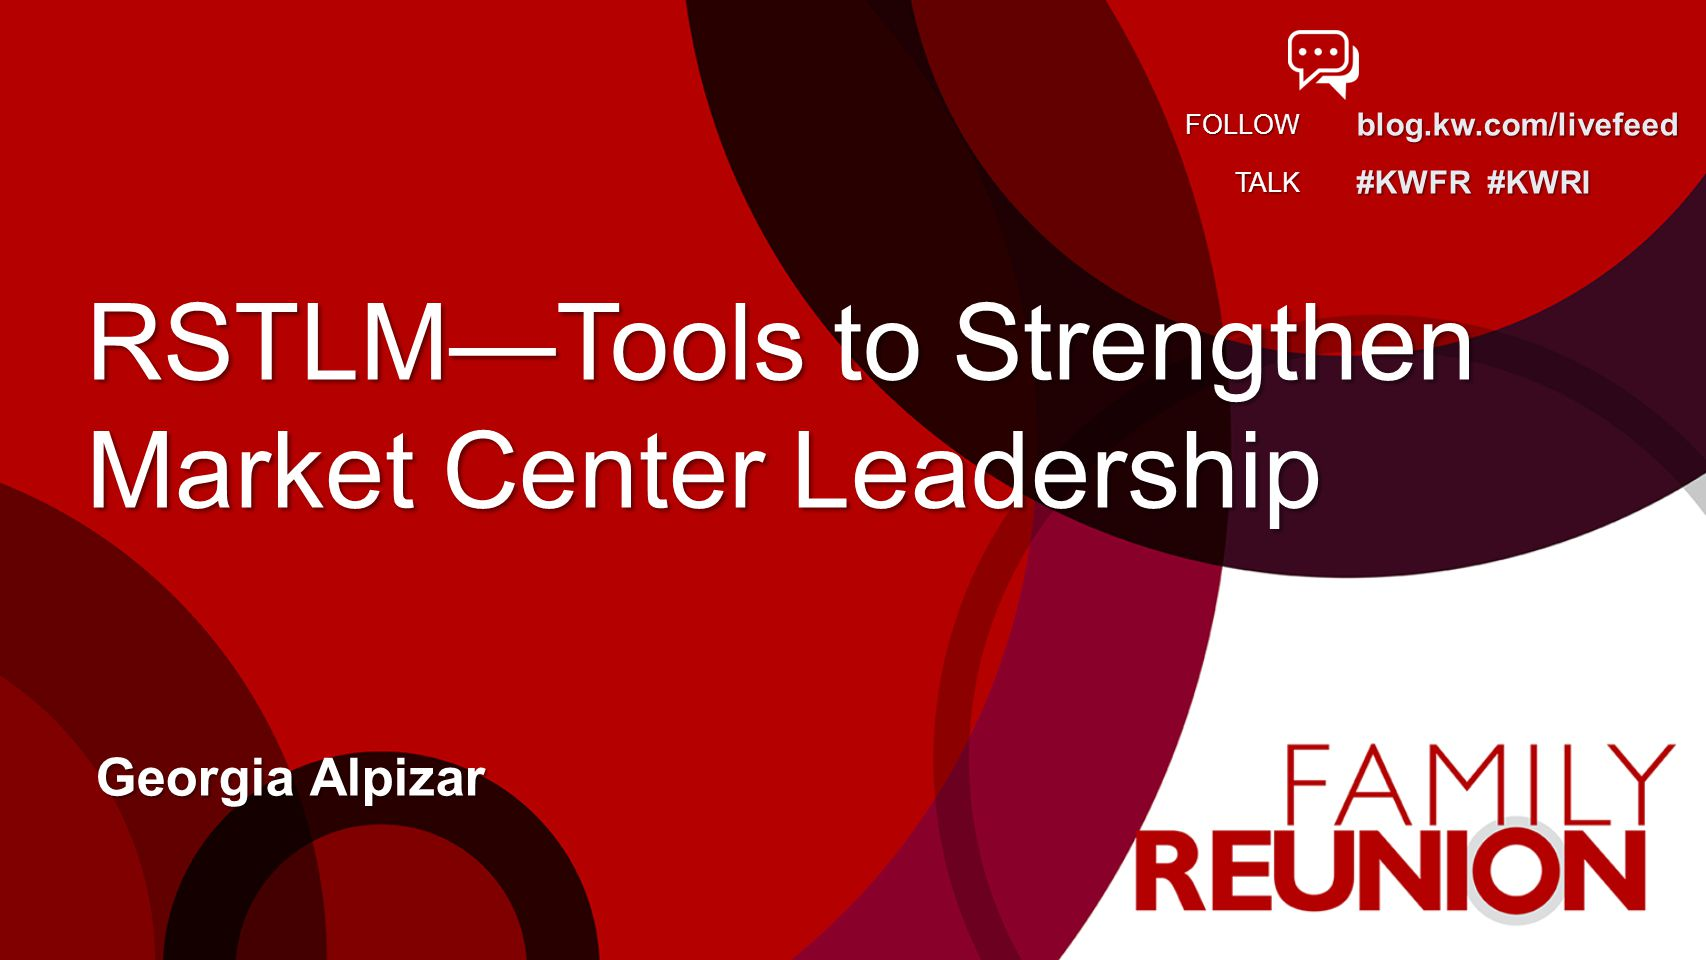 blog.kw.com/livefeed #KWFR #KWRI FOLLOW TALK RSTLMTools to Strengthen Market Center Leadership Georgia Alpizar